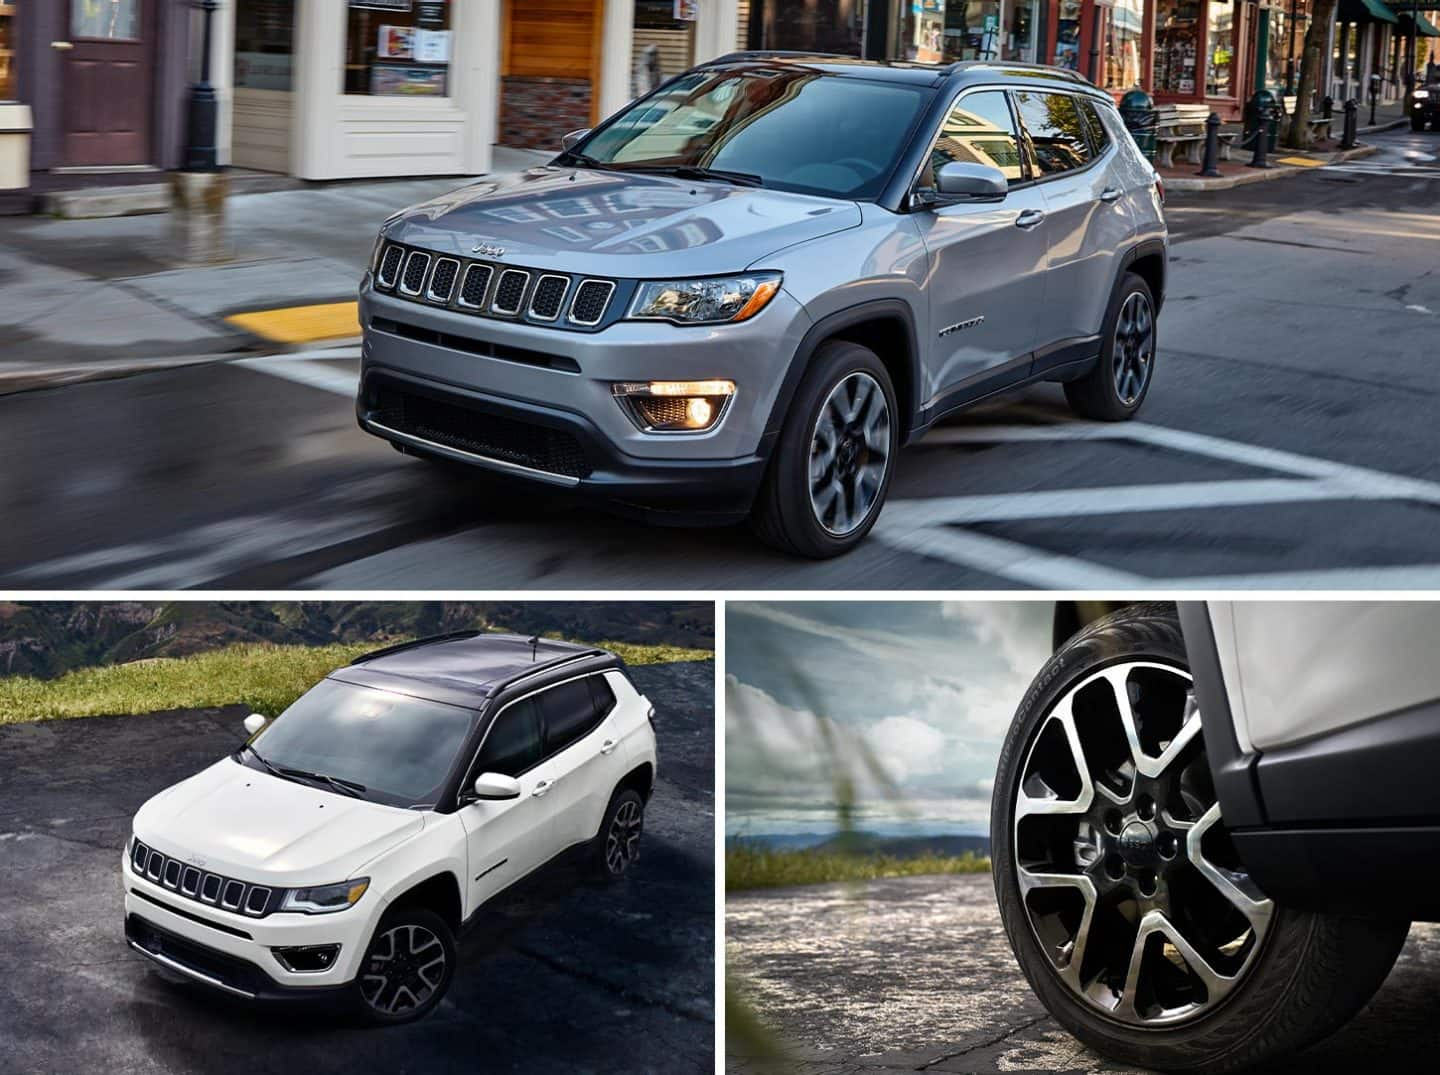 2020 Jeep Compass Exterior Impressive Features View Color Options